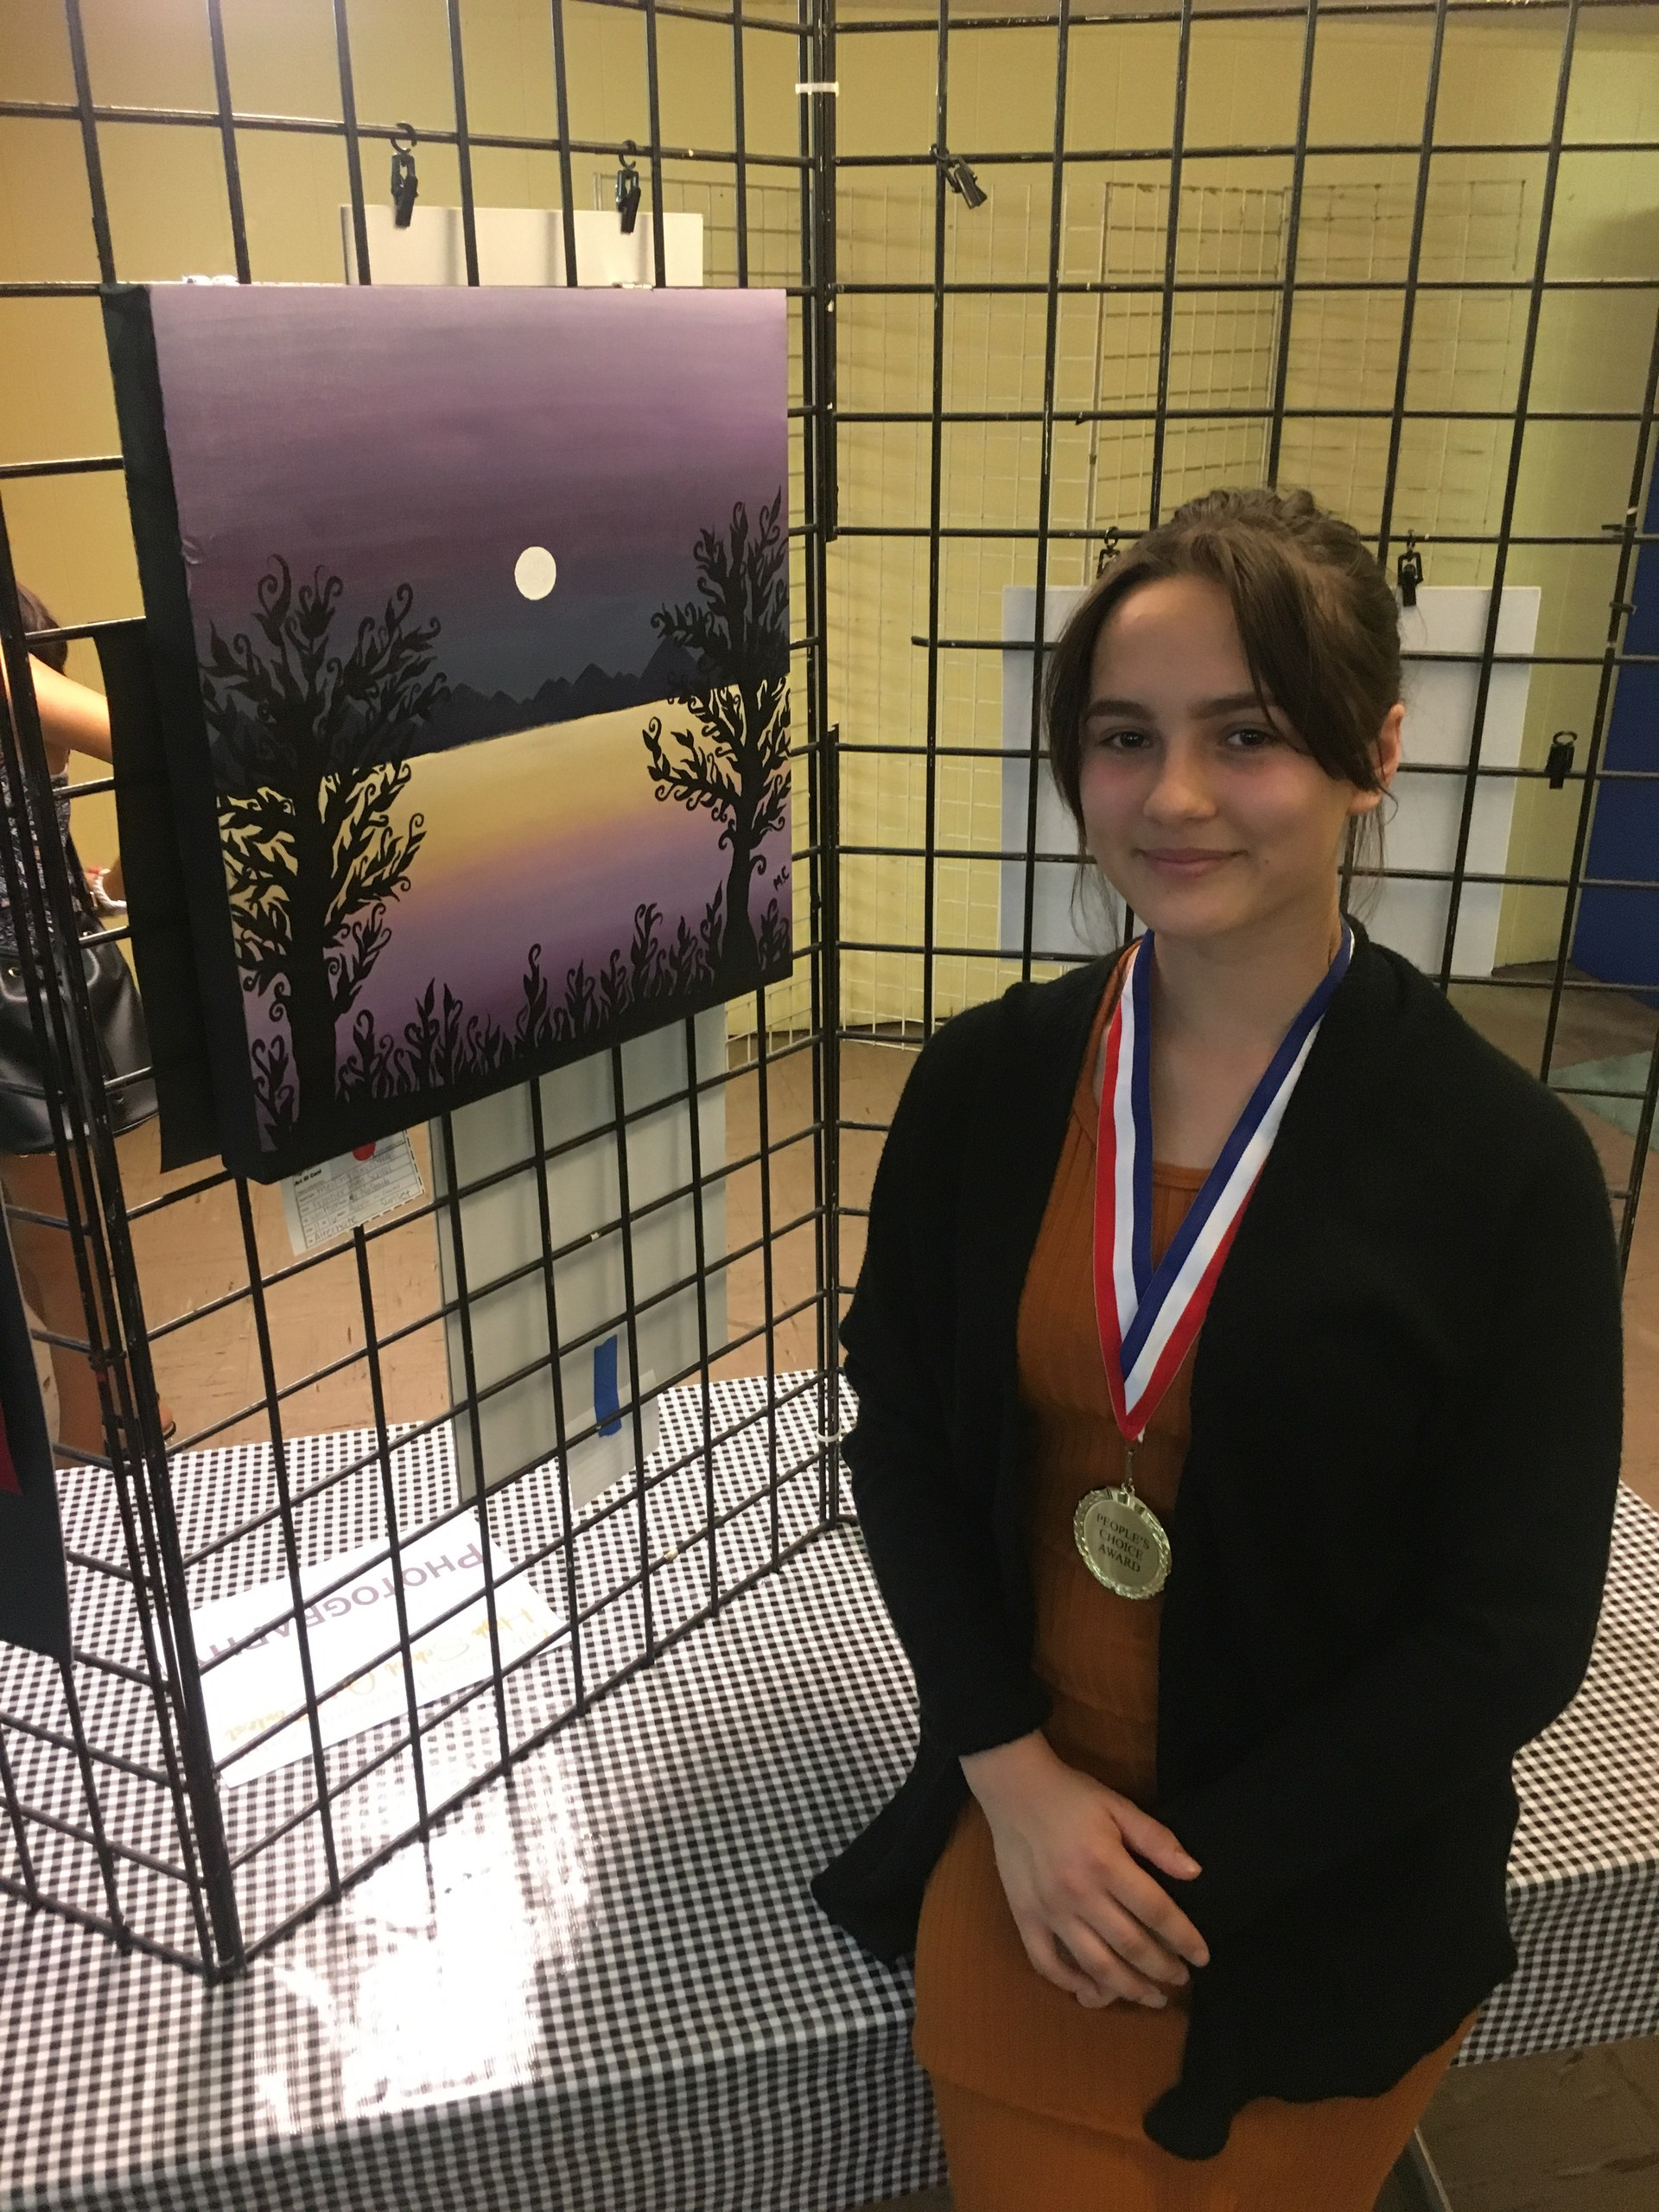 Student with winning artwork at the Harmony Center Art show